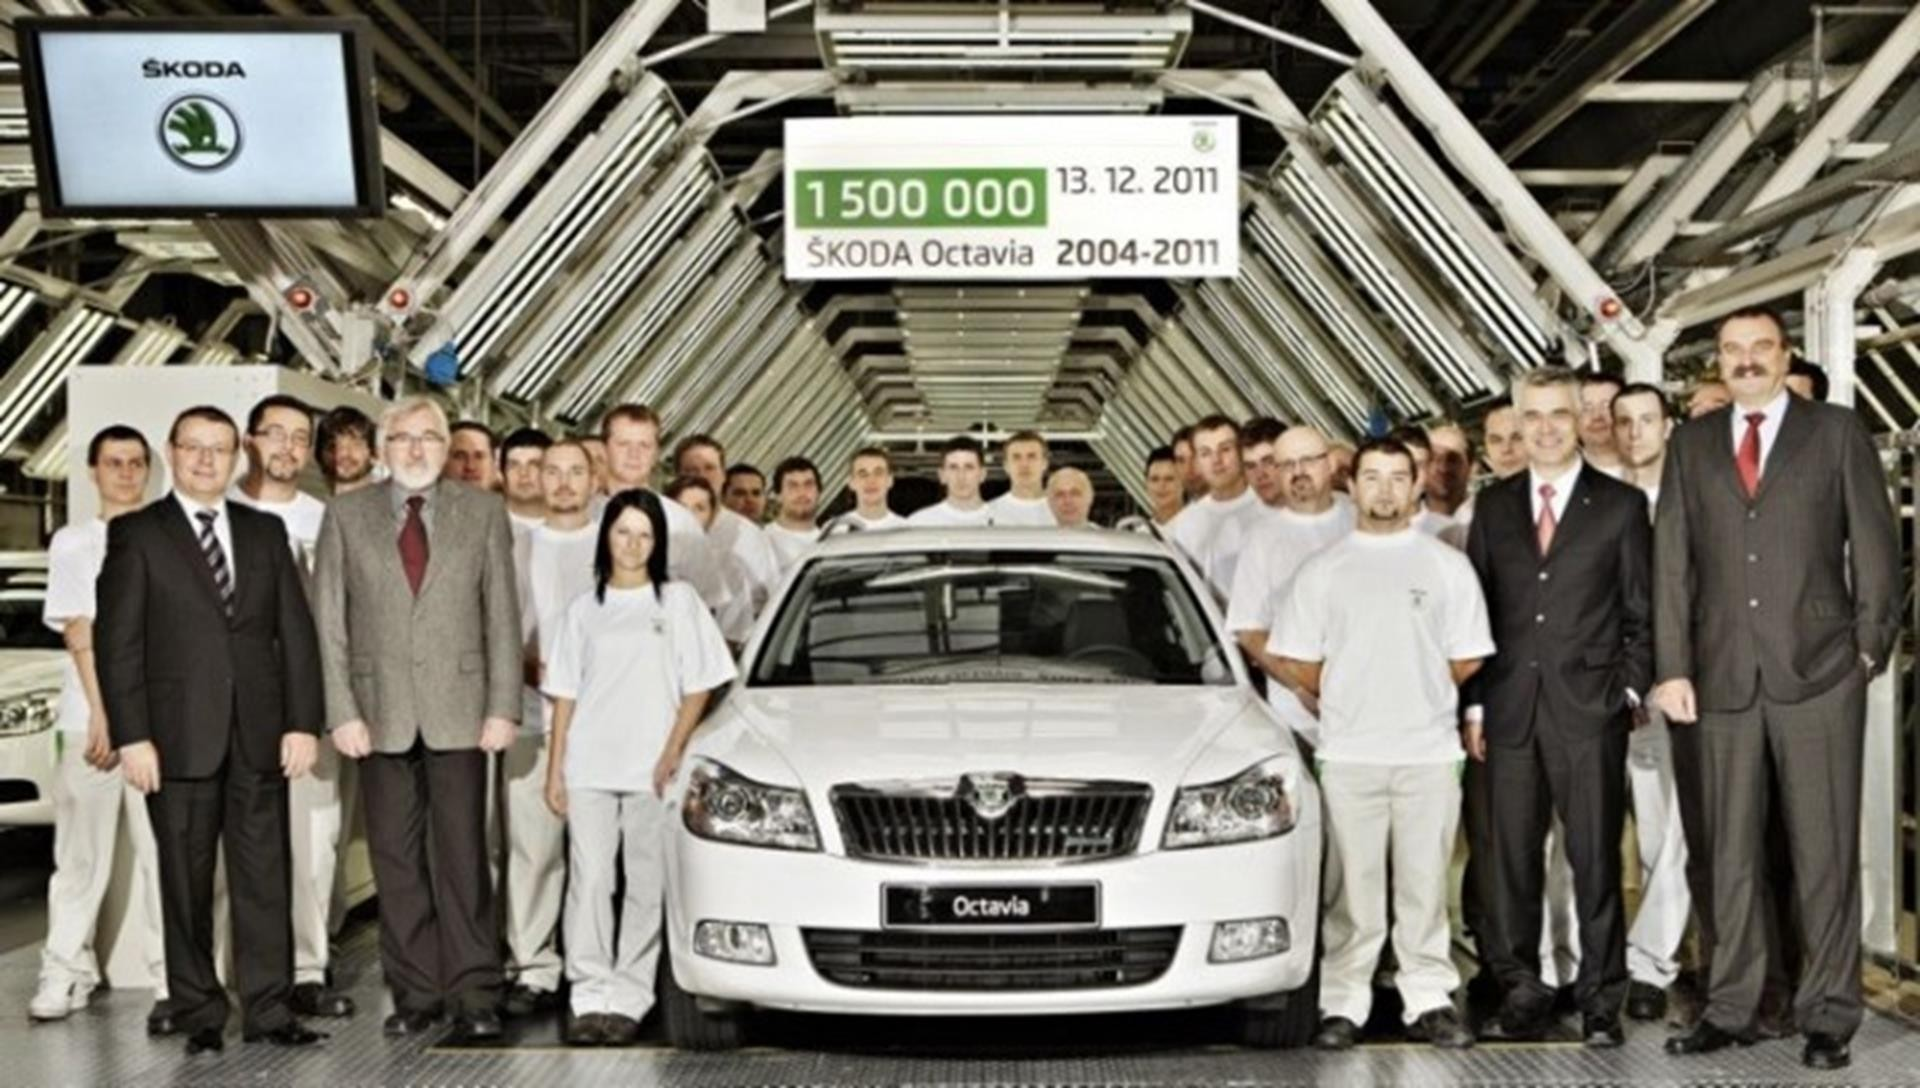 1,500,000th Octavia II Produced